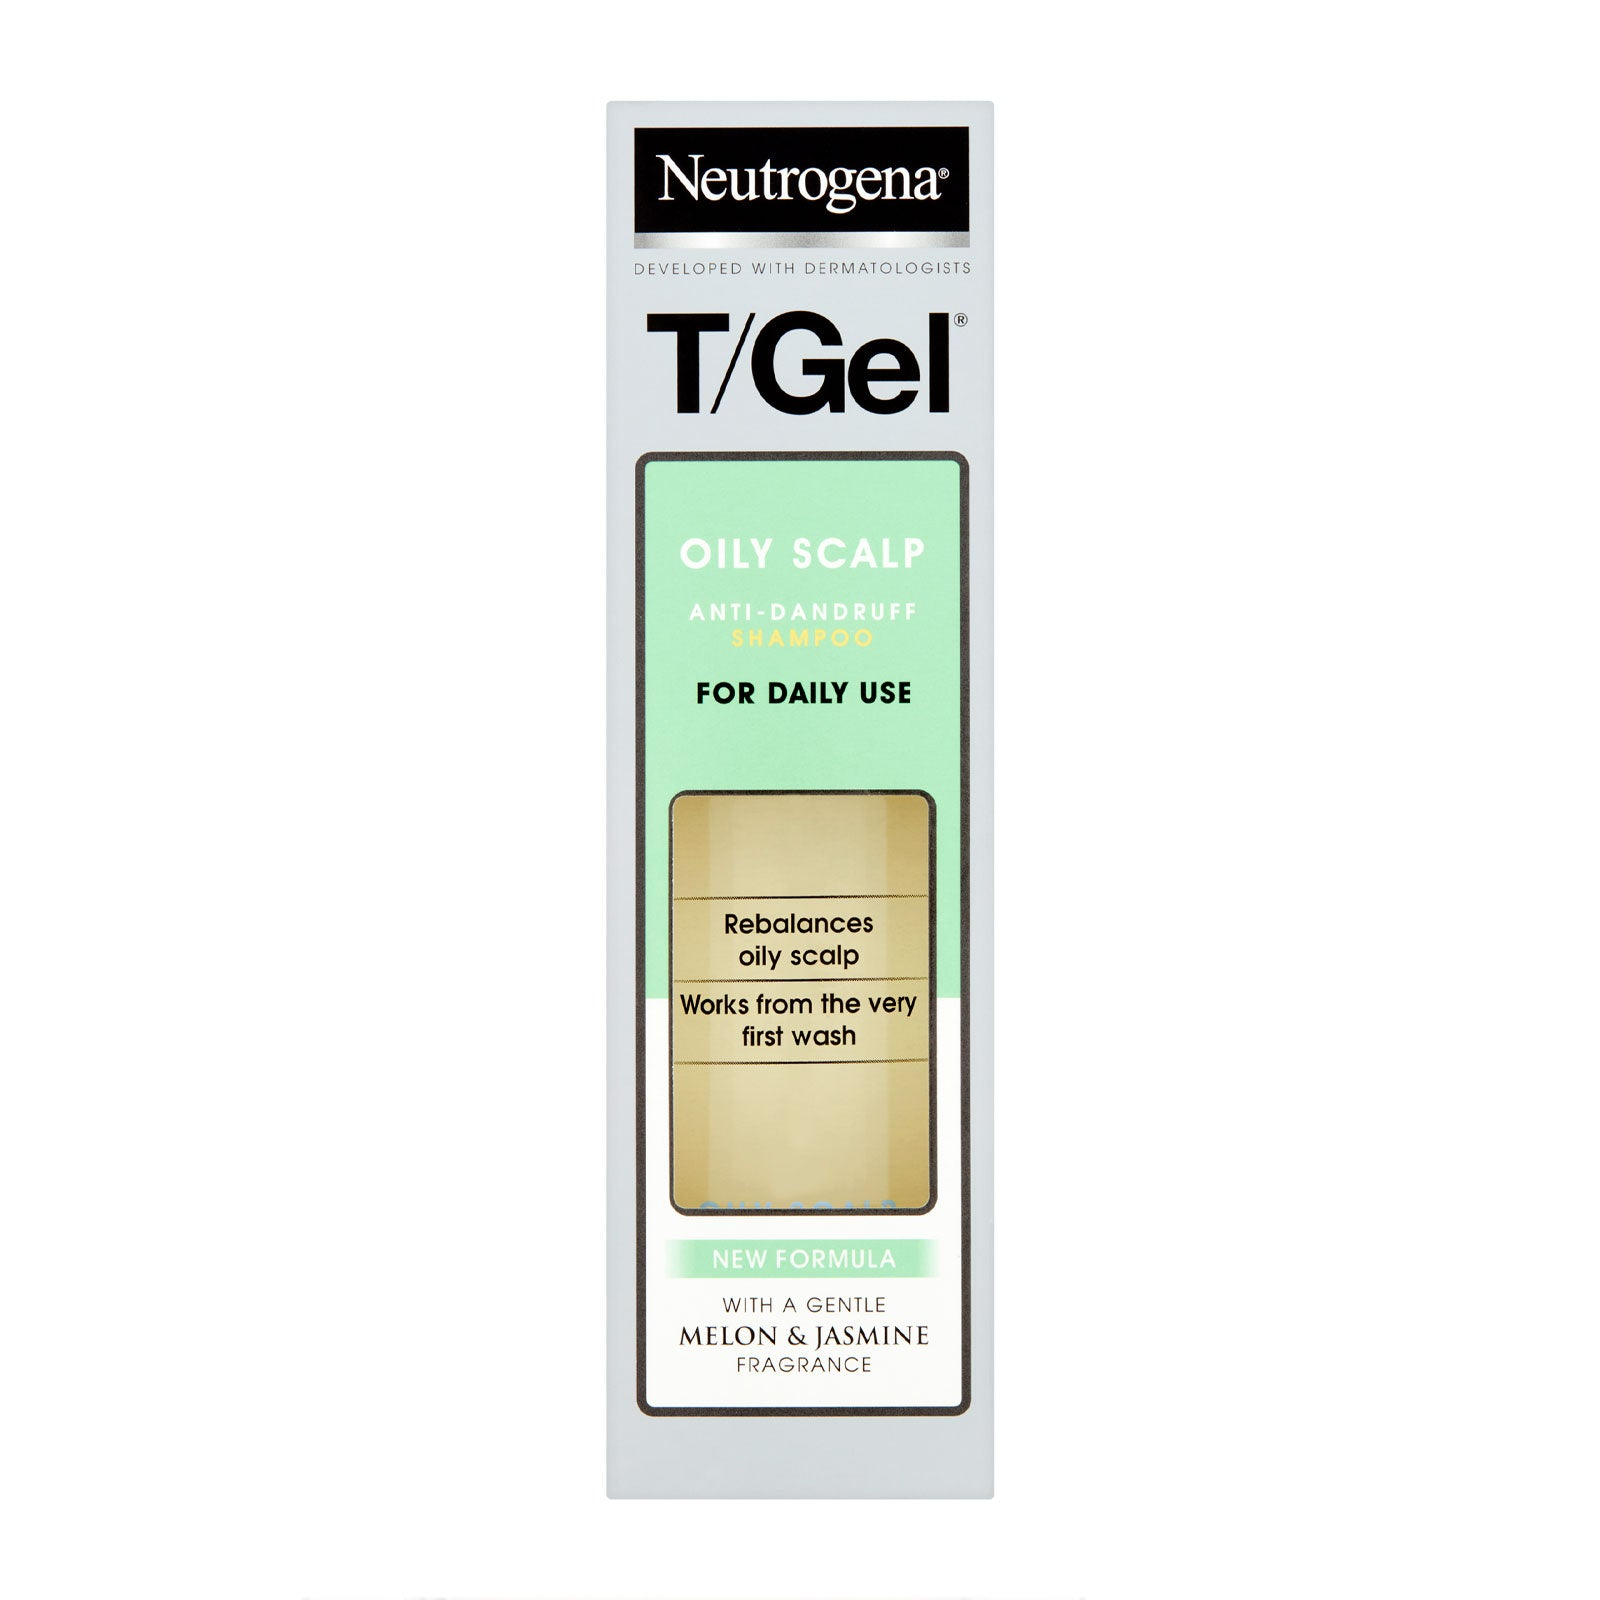 Neutrogena T/Gel Shampoo for Oily Scalp 250ml